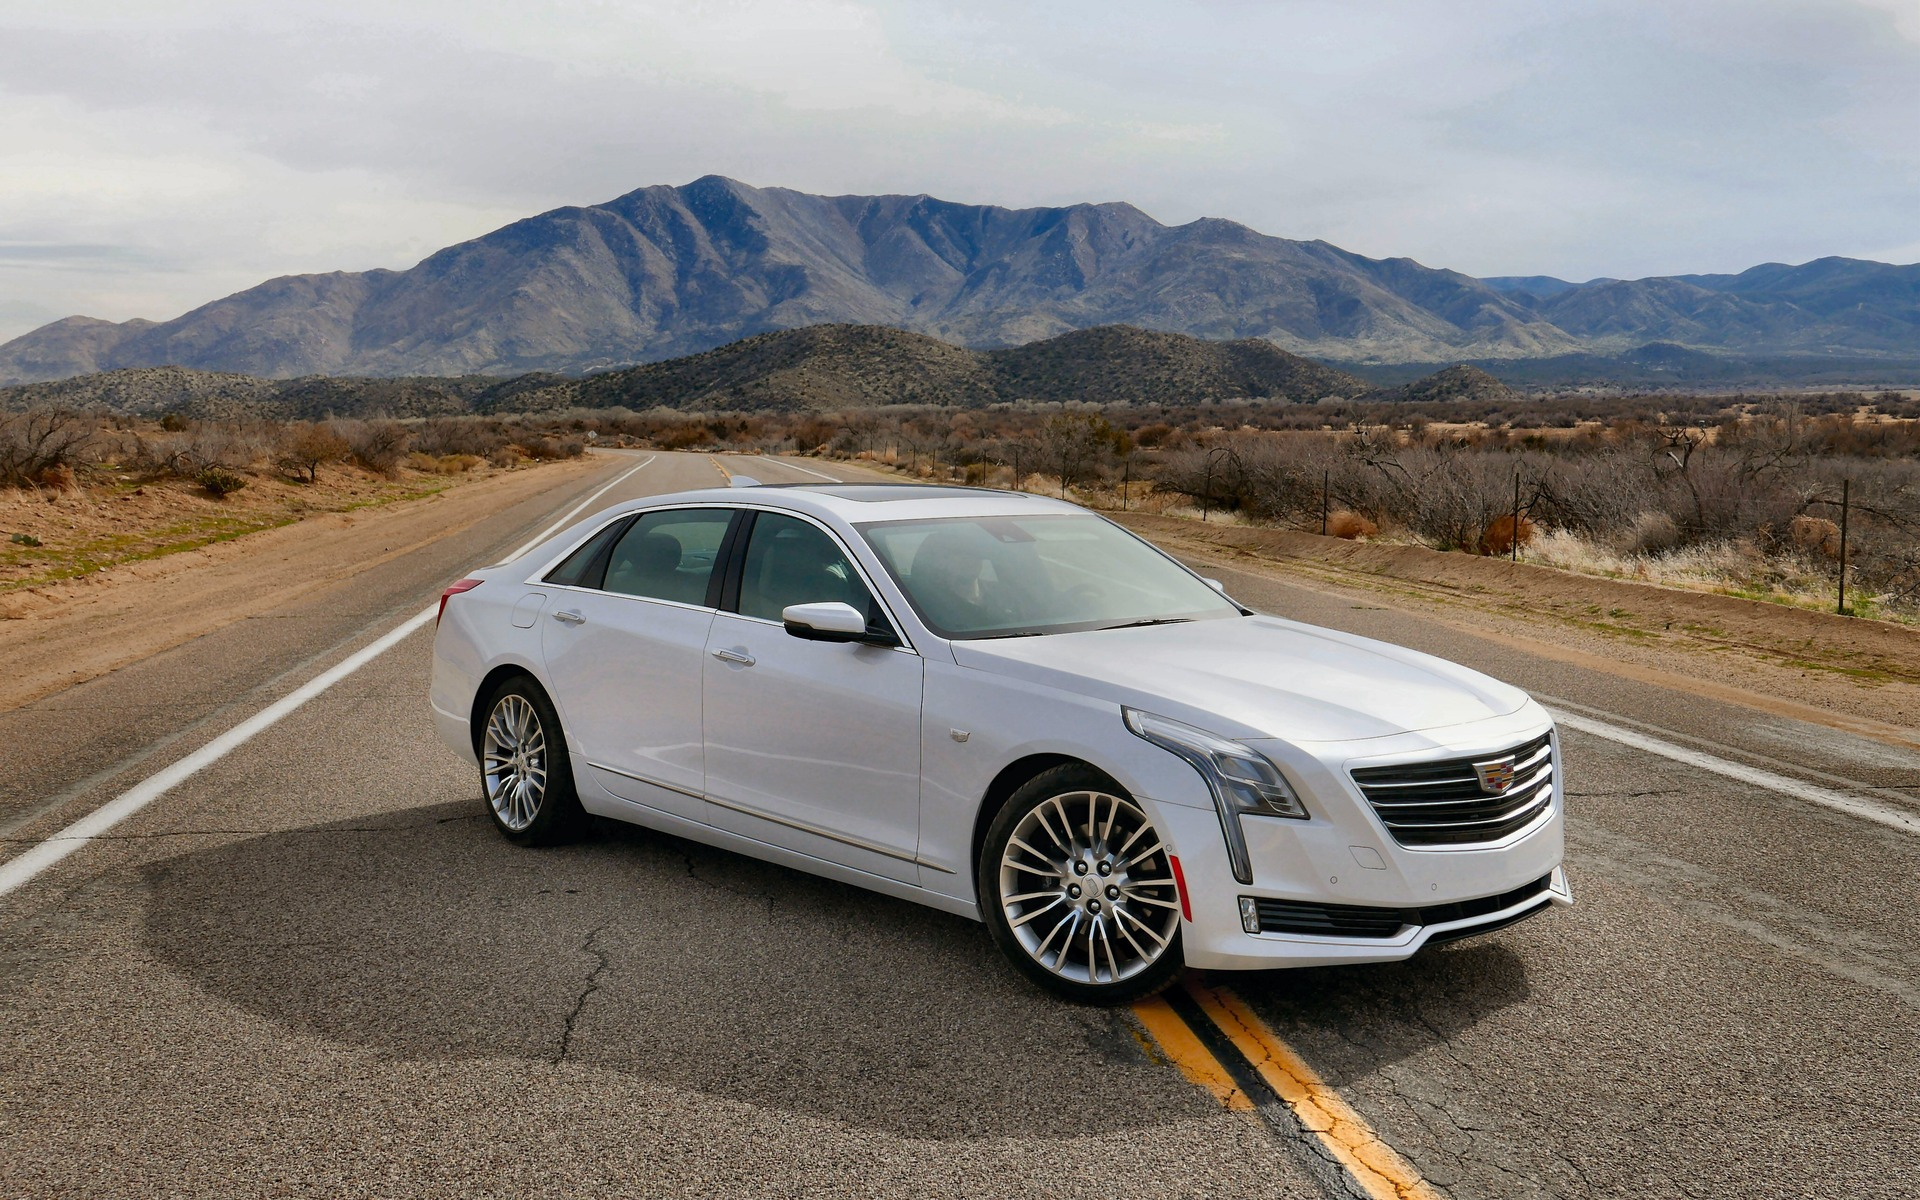 2016 cadillac ct6 v8 tt on the way the car guide. Black Bedroom Furniture Sets. Home Design Ideas